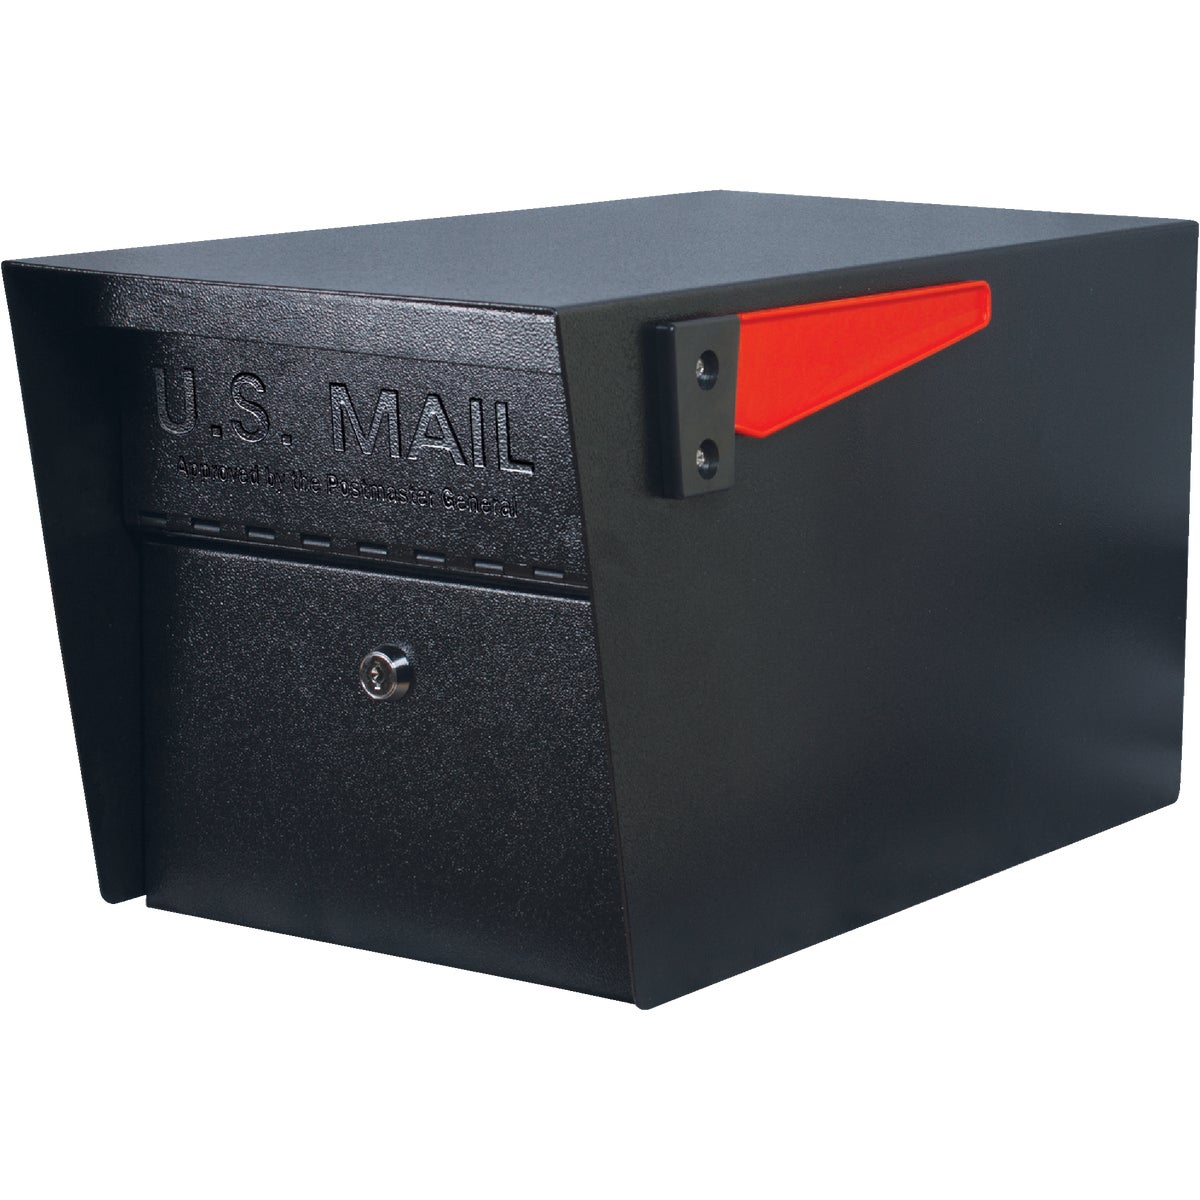 Blk Mail Manager Mailbox